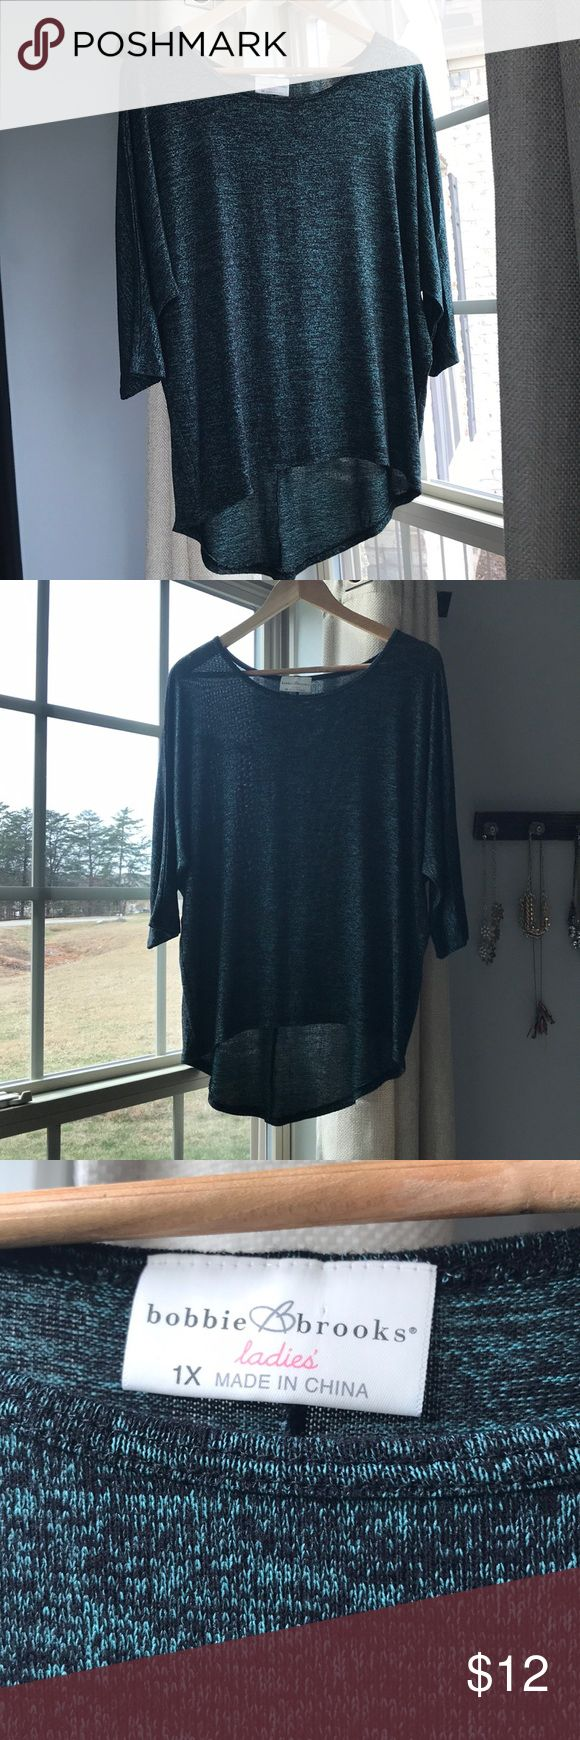 Bobbie Brooks slouchy top Bobbie Brooks slouchy top! Size 1X. Green and black mixed thread. So soft and comfy! Pairs perfectly with leggings! Bobbie Brooks Tops Tees - Long Sleeve